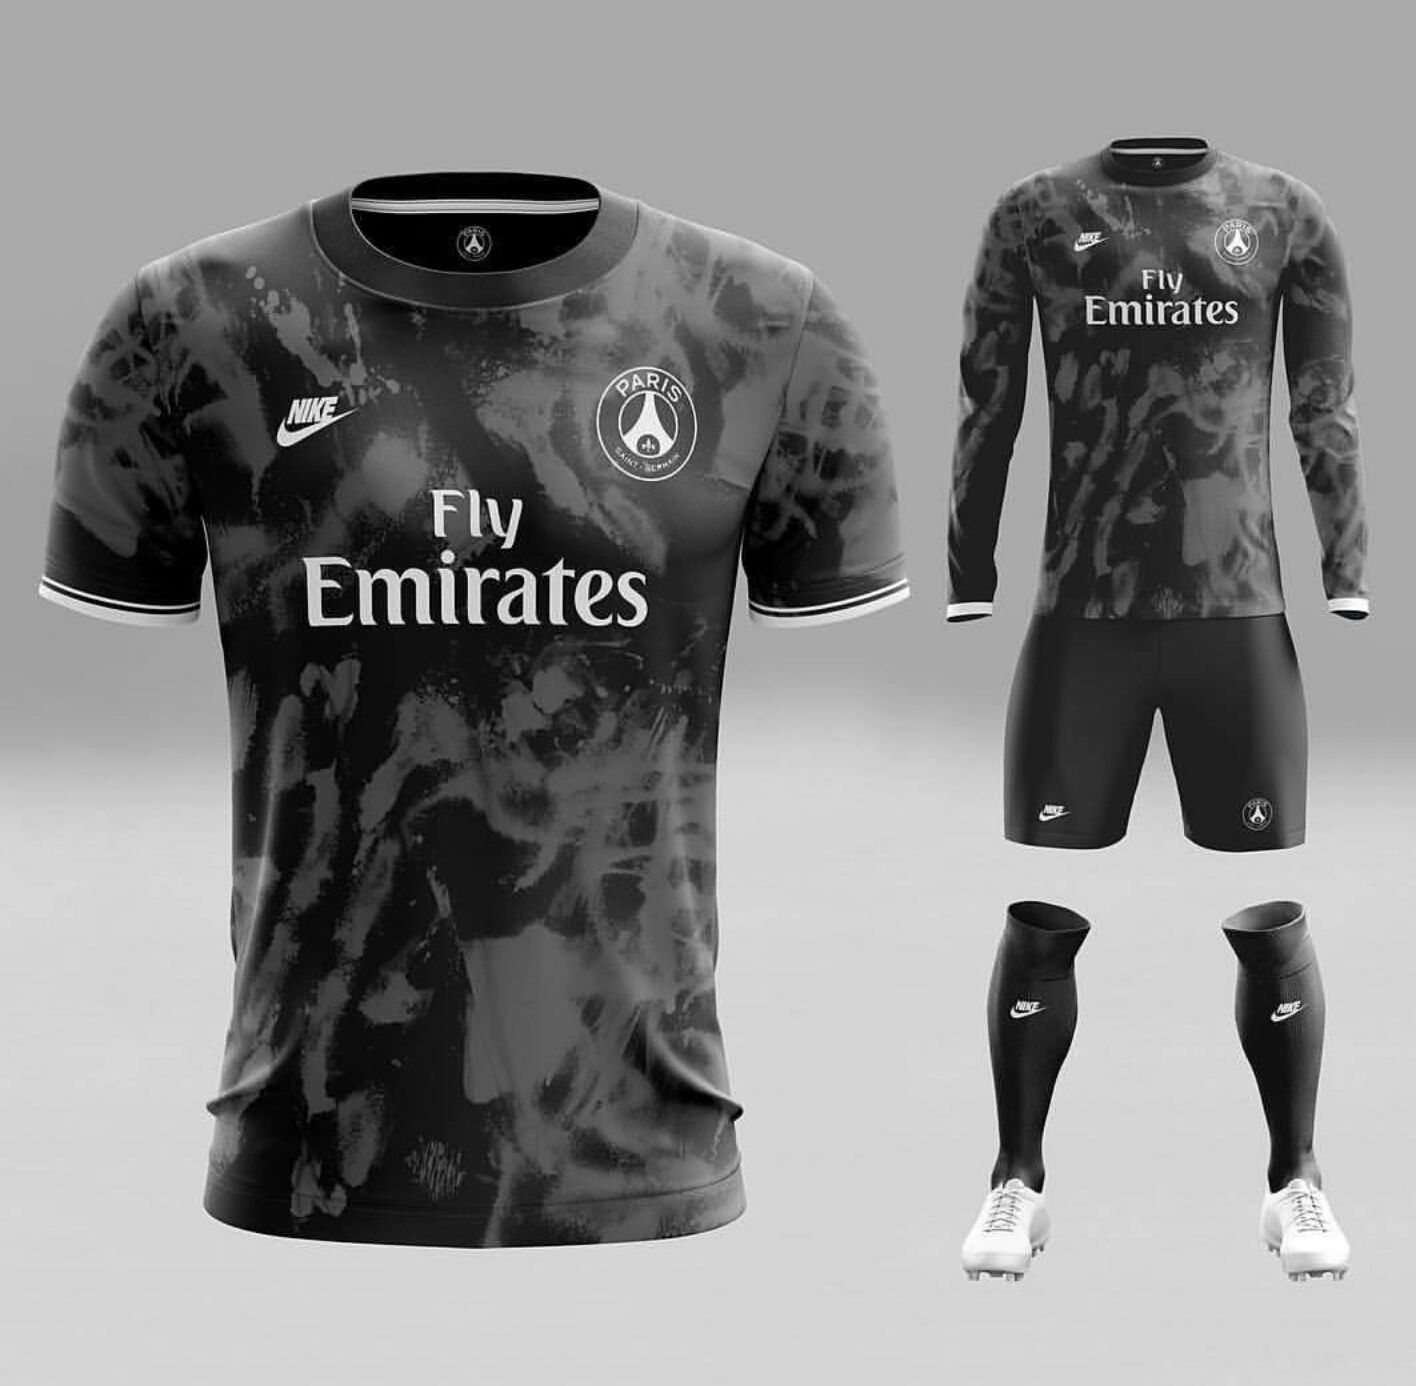 le maillot du psg vu par un graphiste. Black Bedroom Furniture Sets. Home Design Ideas